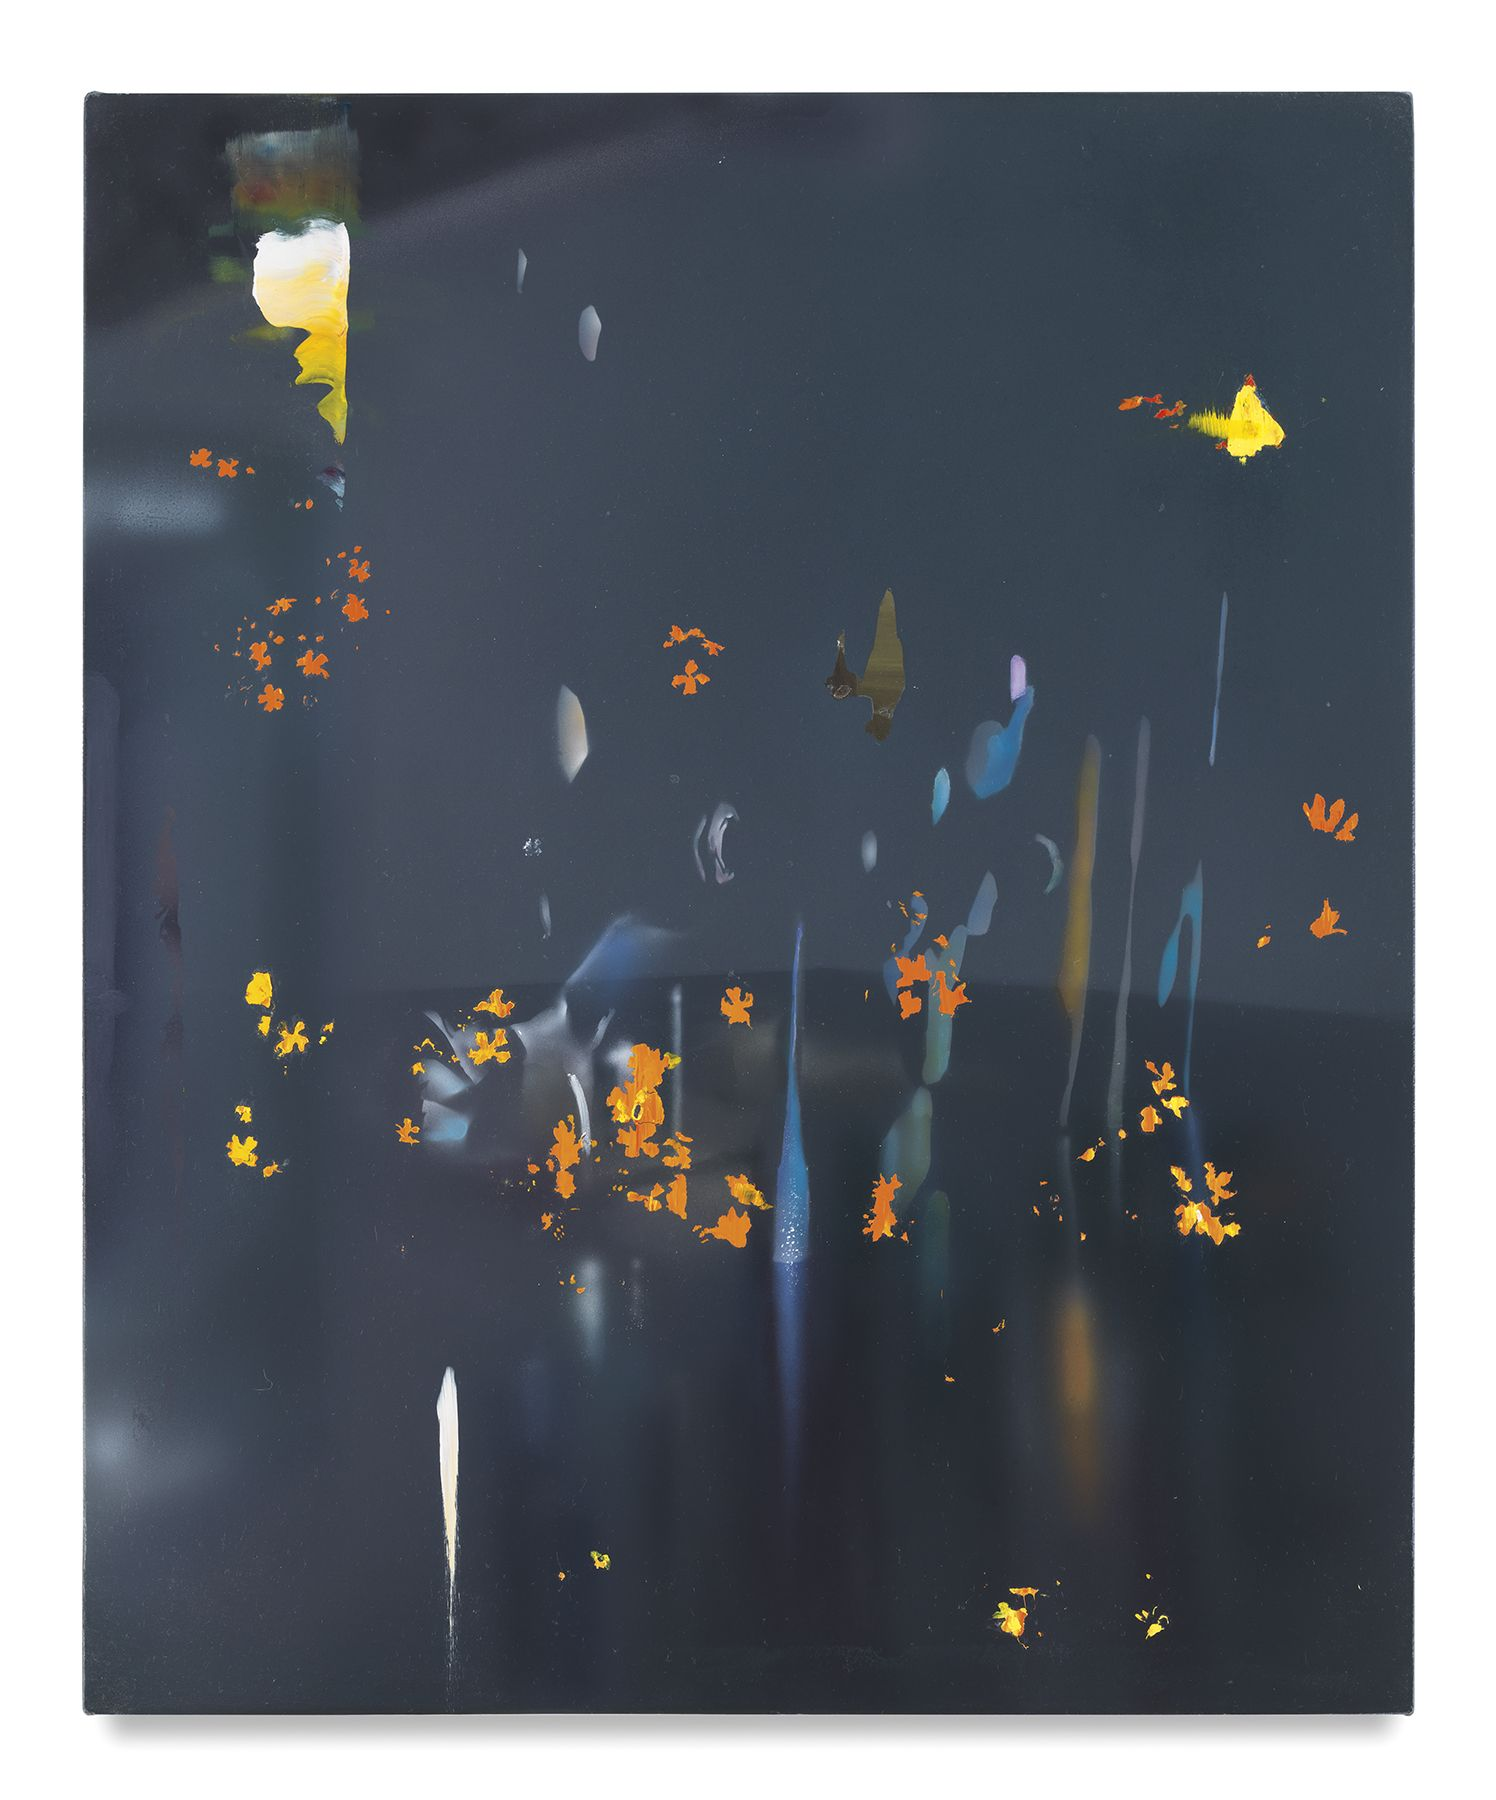 Embers, 2018, Acrylic on canvas over panel, 22 1/4 x 18 inches, 56.5 x 45.7 cm, MMG#30128